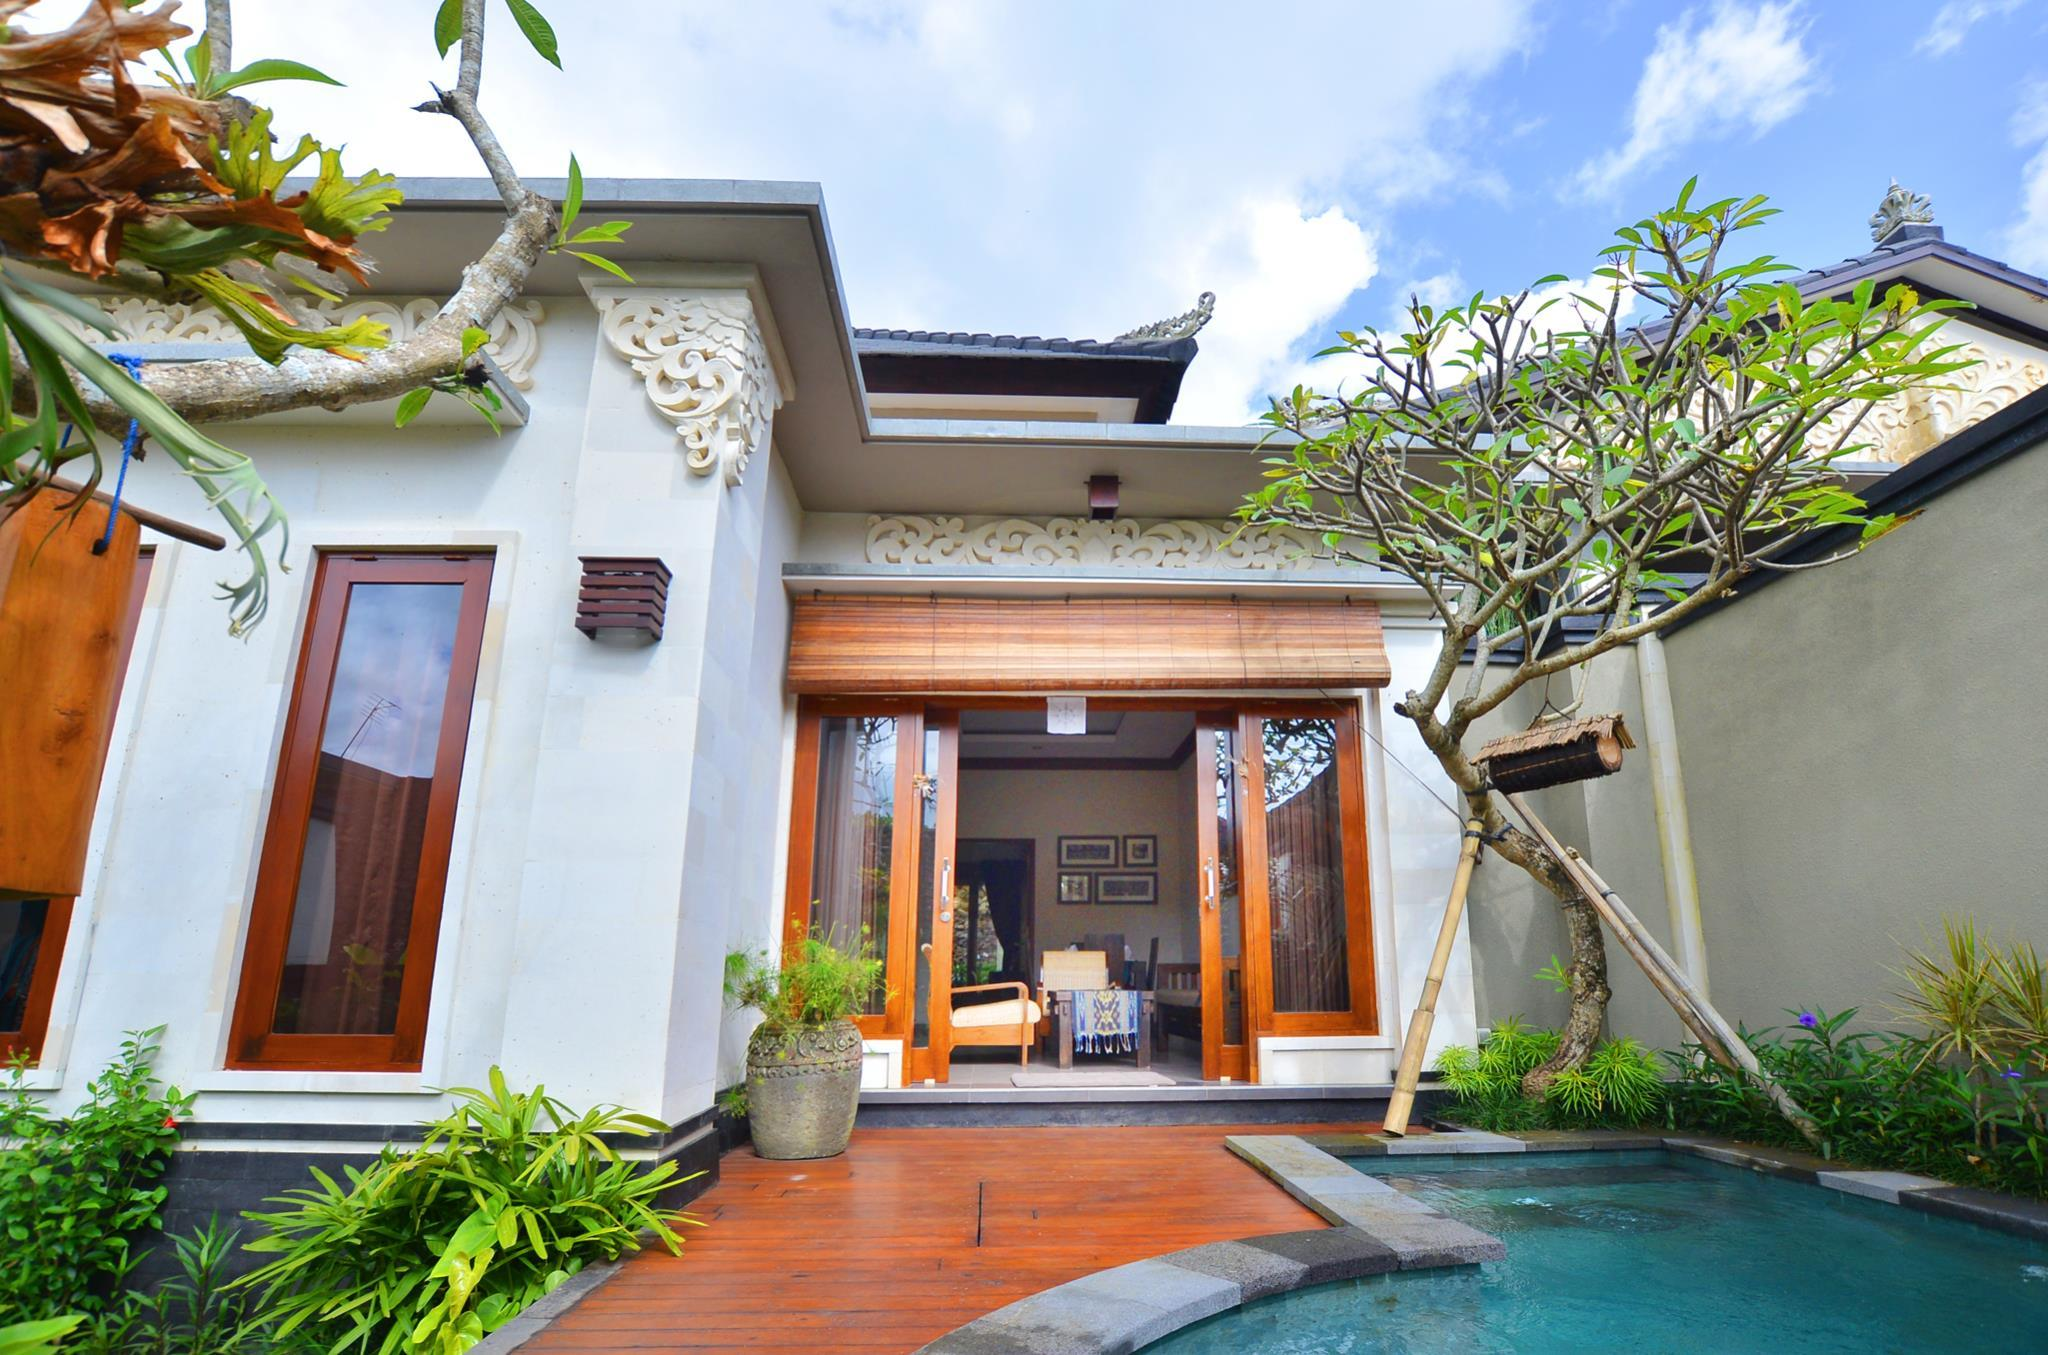 Nuaja Balinese Guest House Bali Offers Free Cancellation 2021 Price Lists Reviews